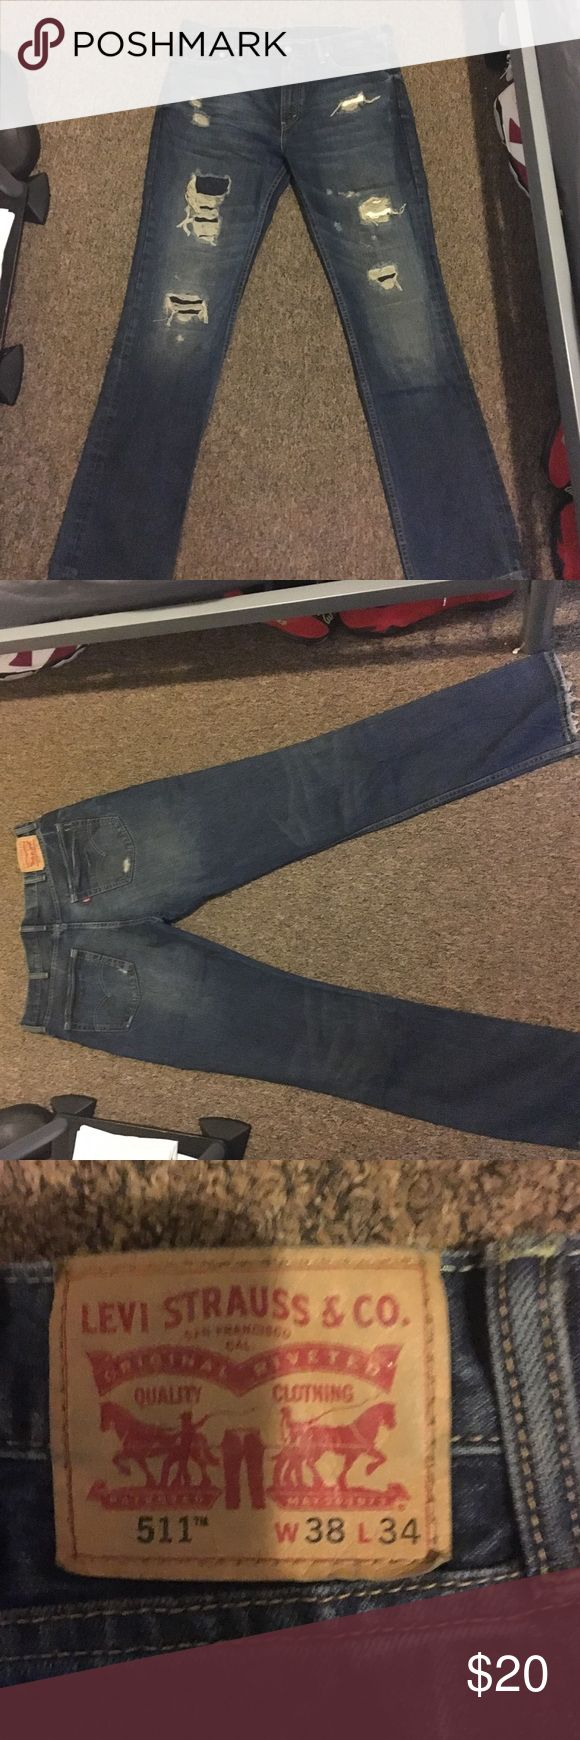 511 distressed Levi's Distressed Levi jeans. Style 511. Only worn once. Levi's Jeans Slim